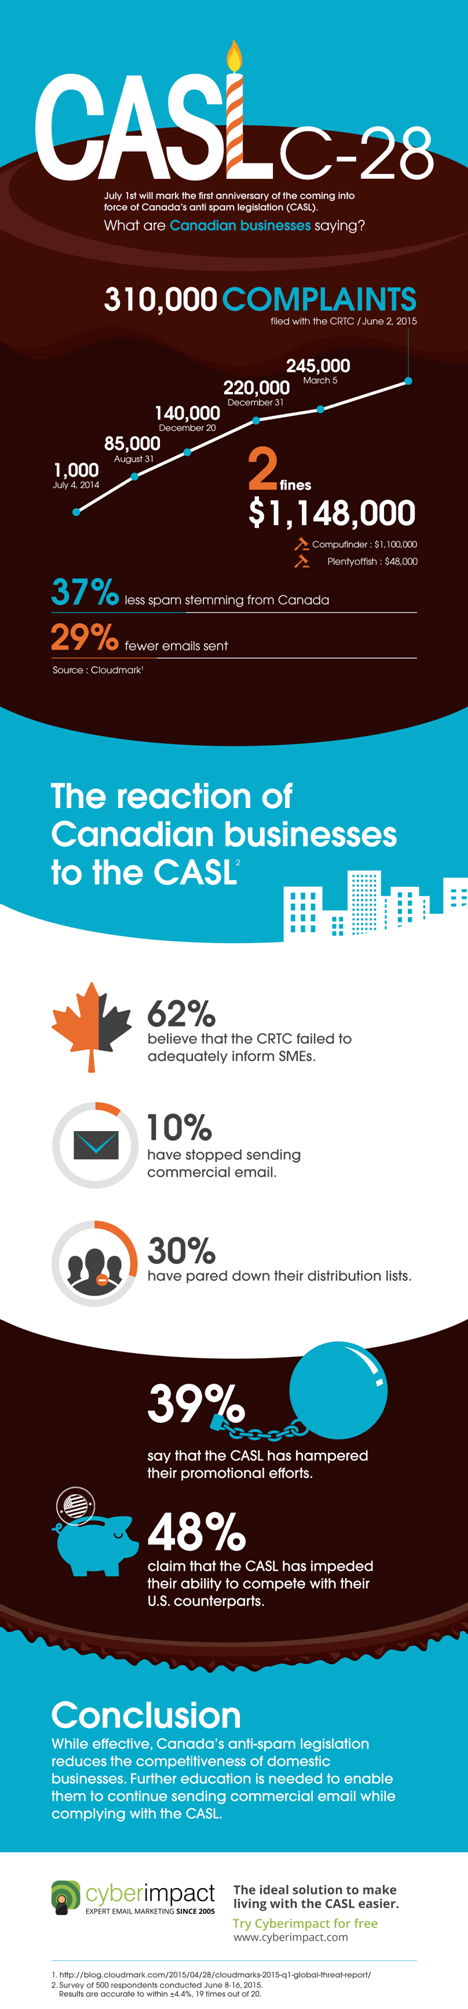 Cyberimpact CASL infographic